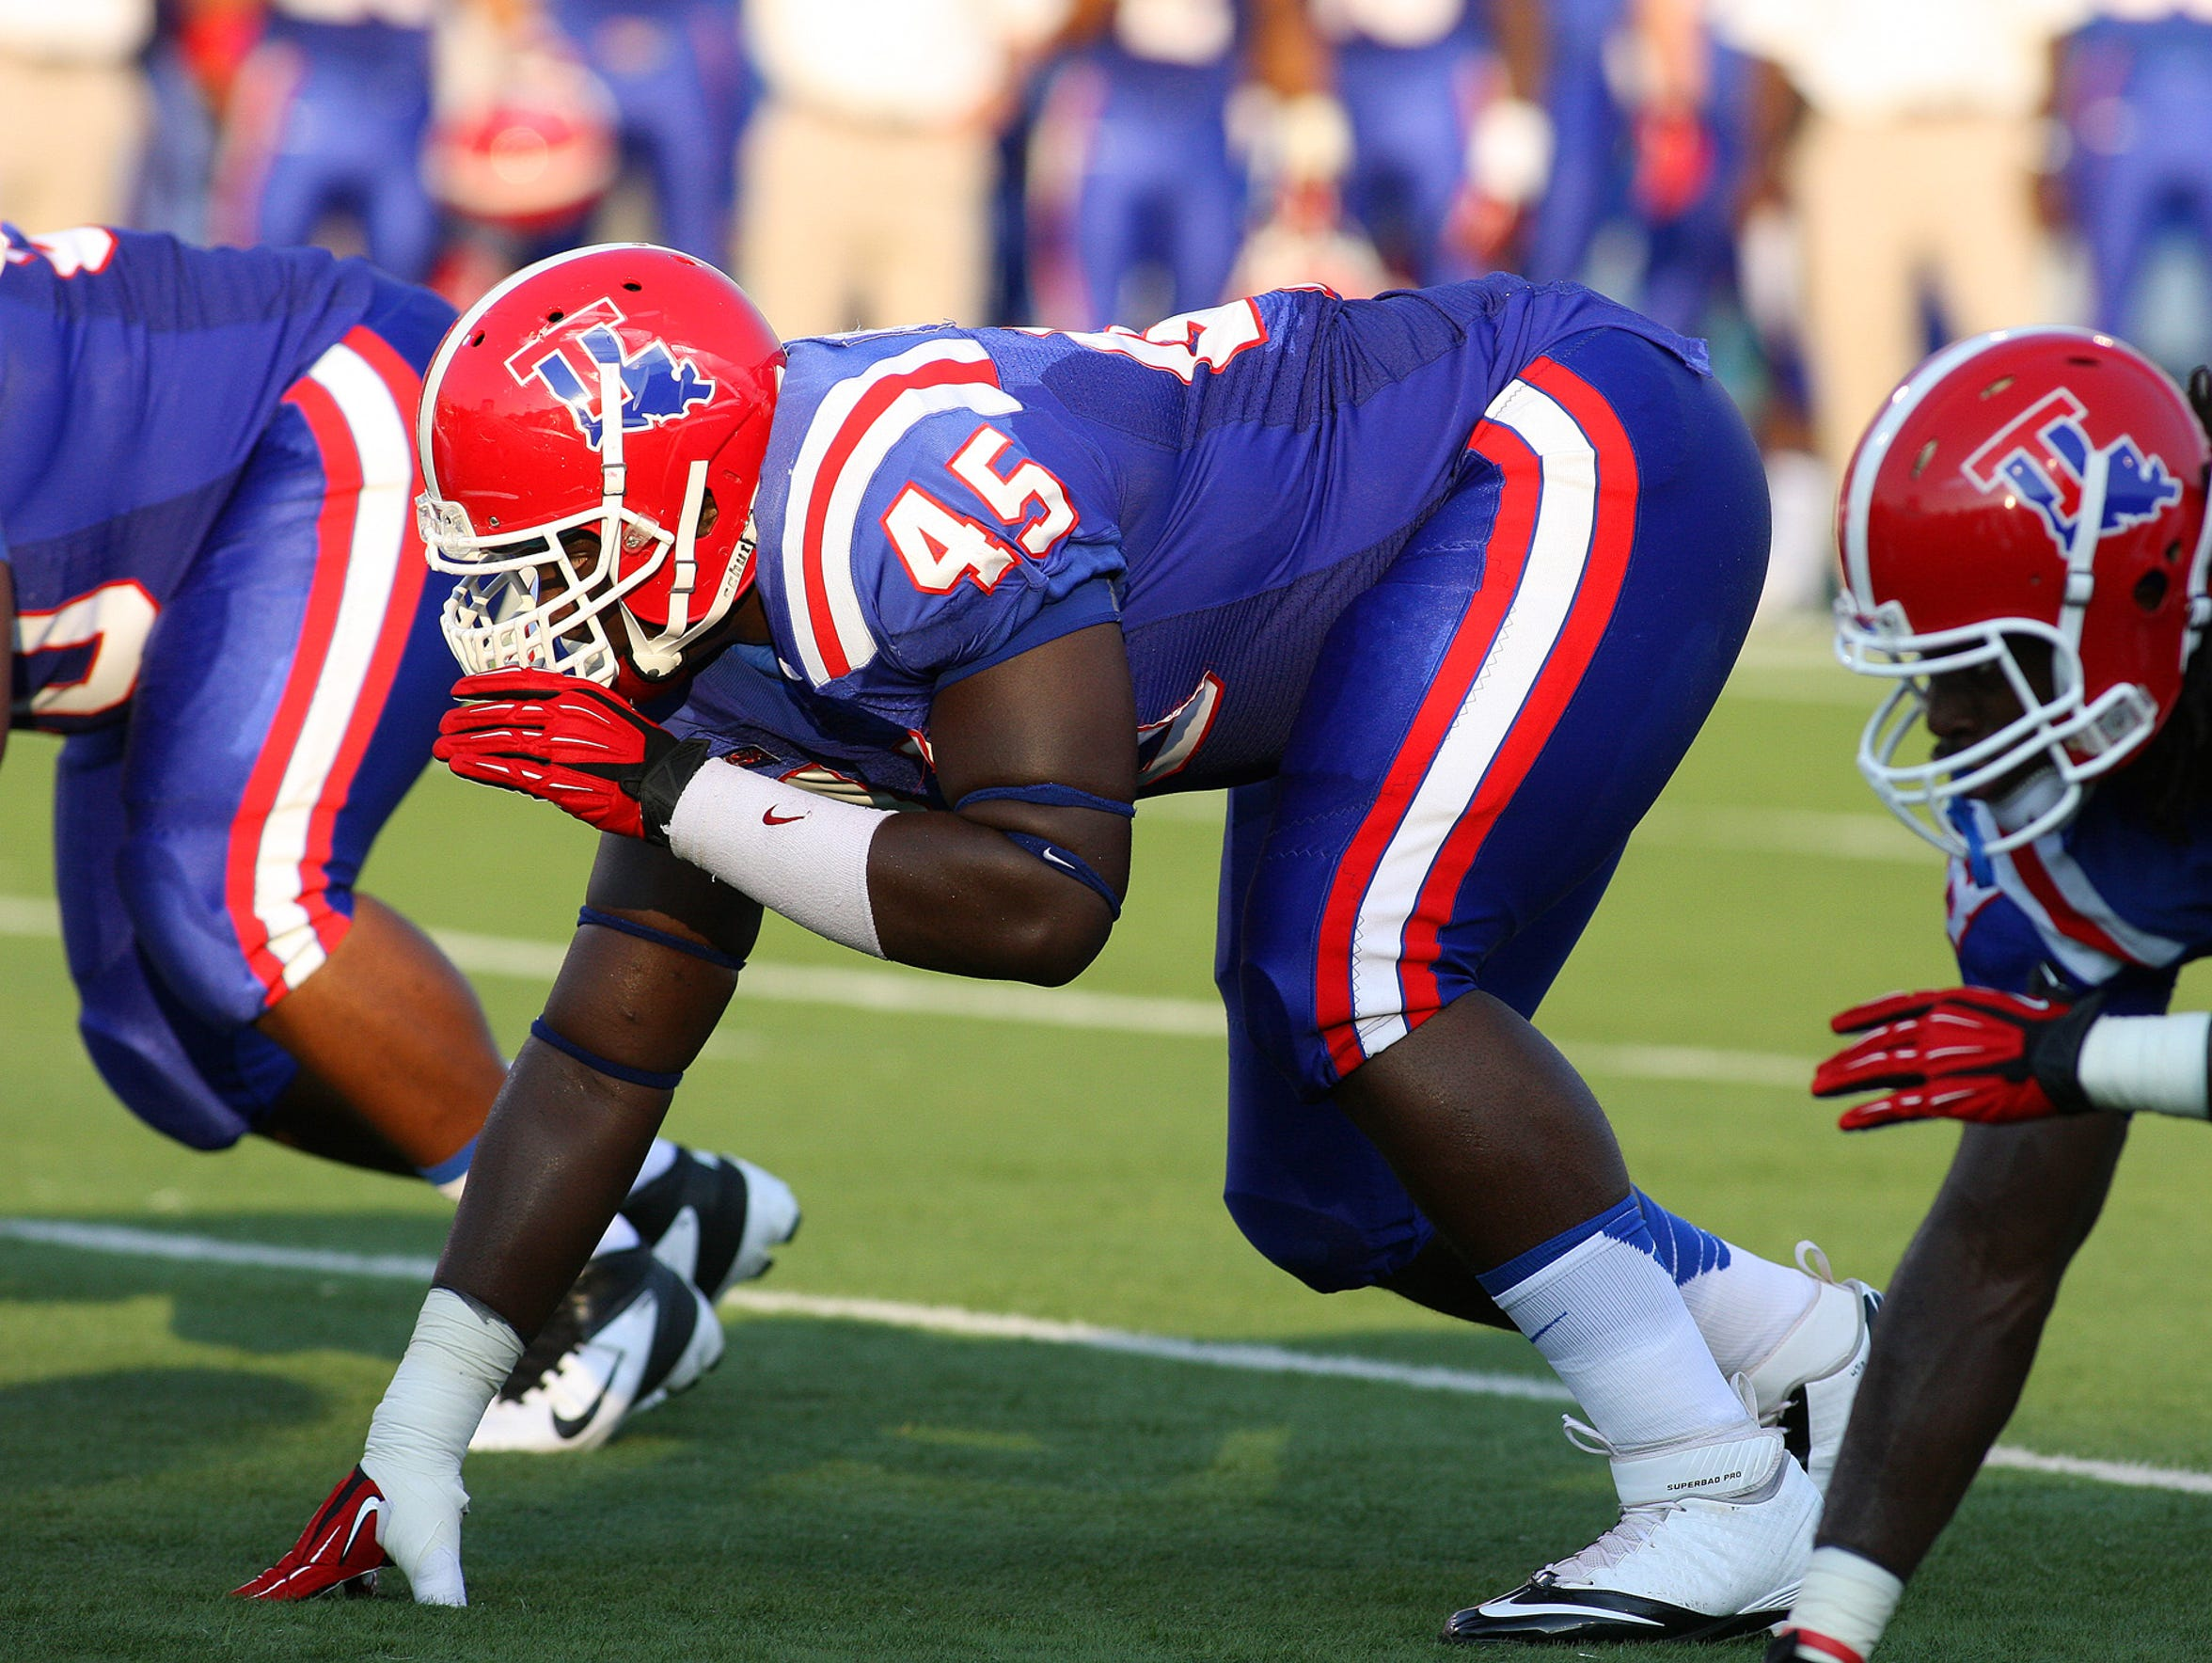 Louisiana Tech defensive tackle Vernon Butler won player